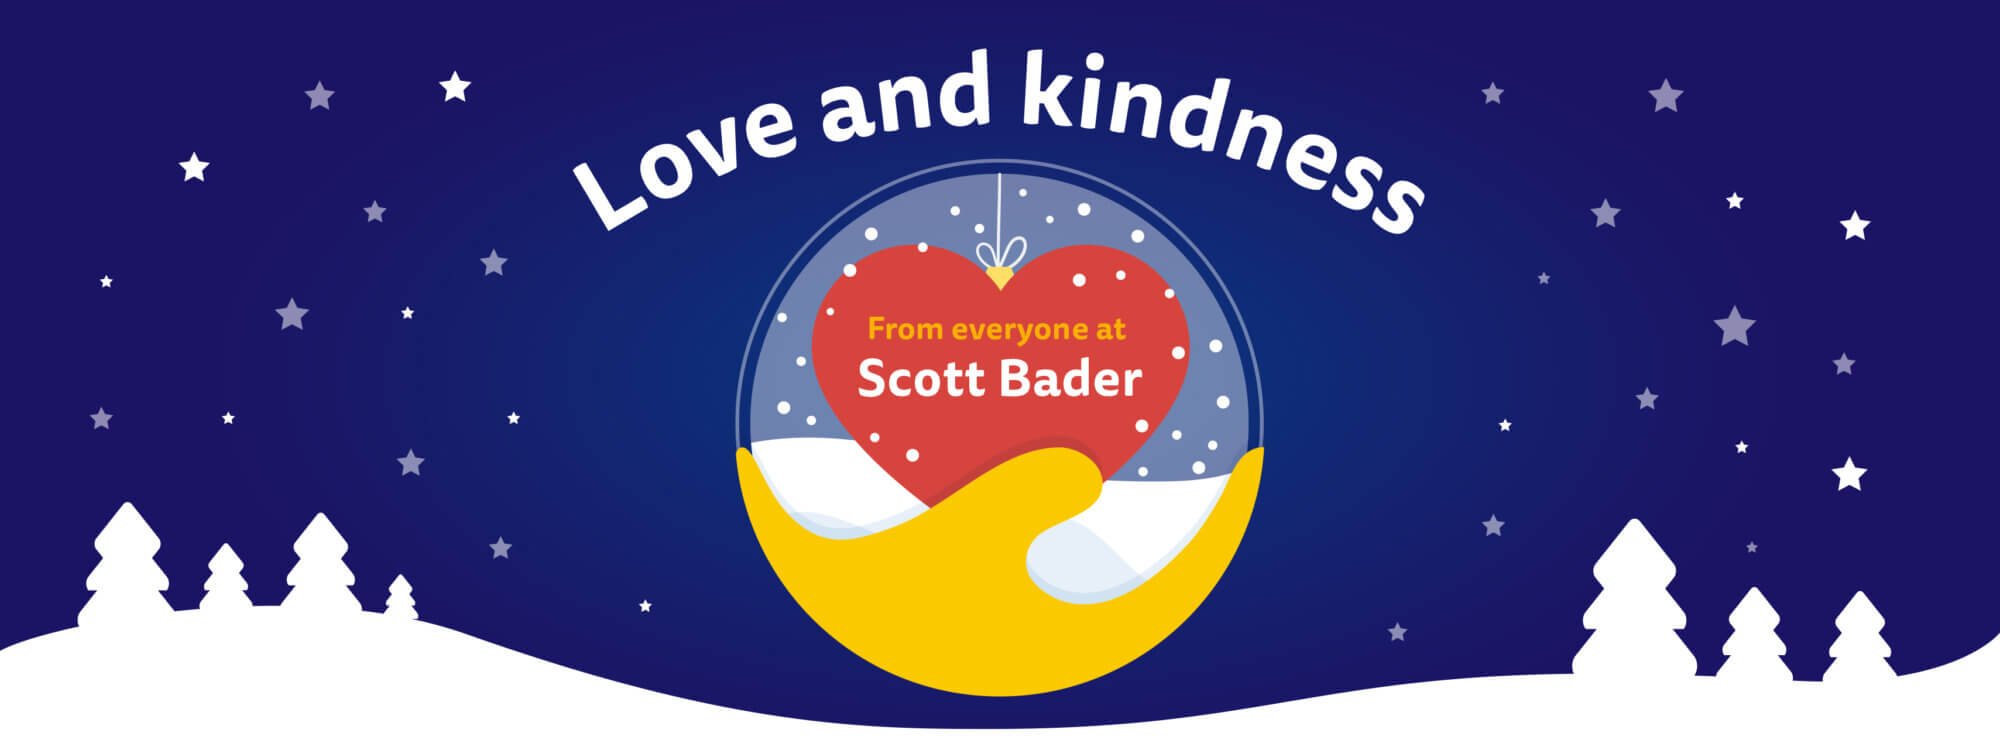 Sending you love and kindness at this time of year